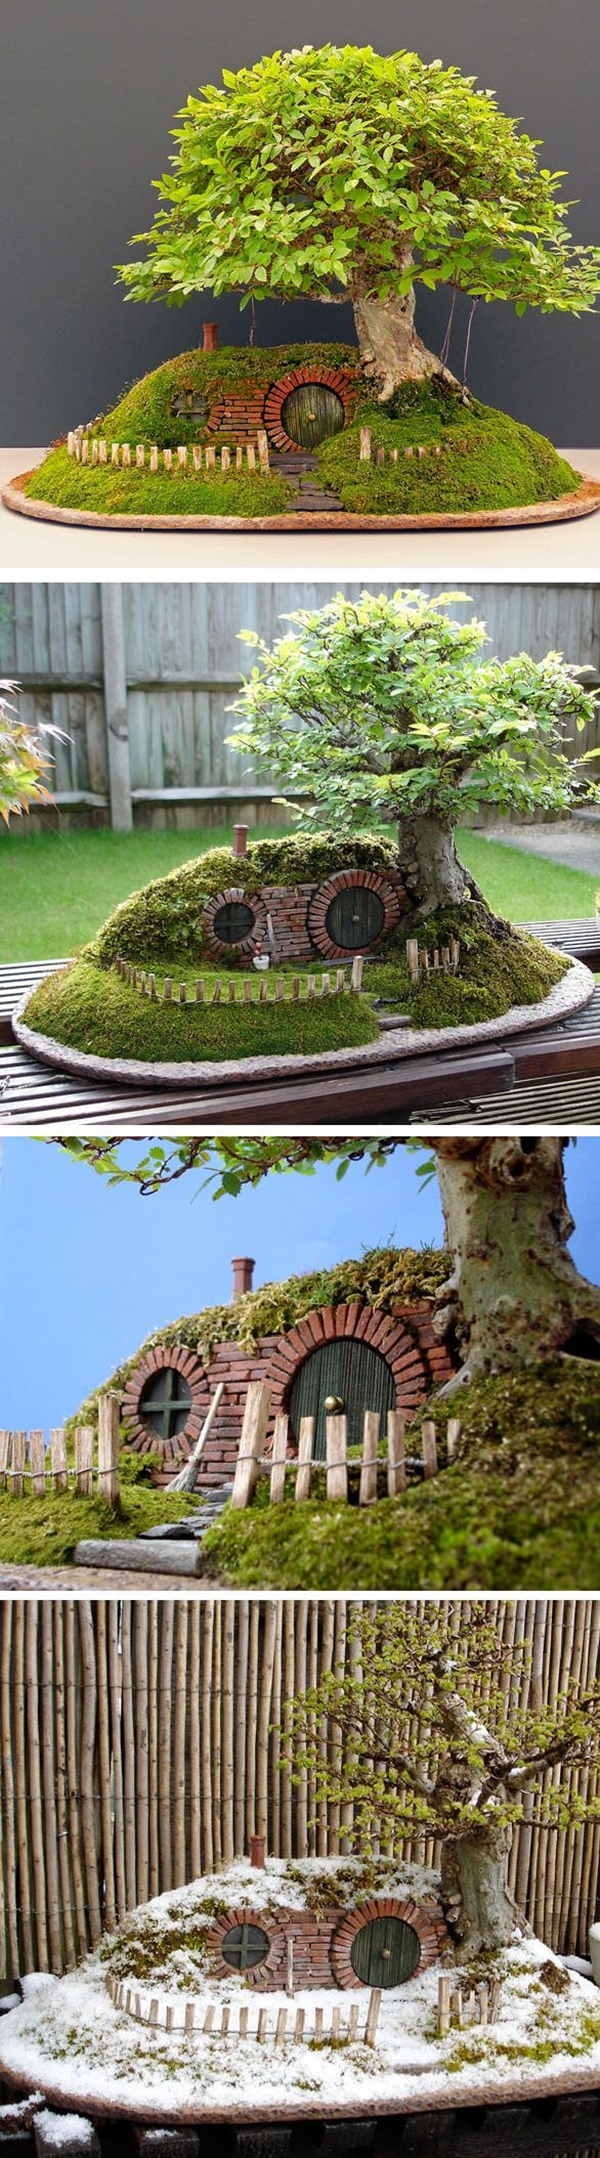 Majestic Fairy Garden Installations - 1 (32)